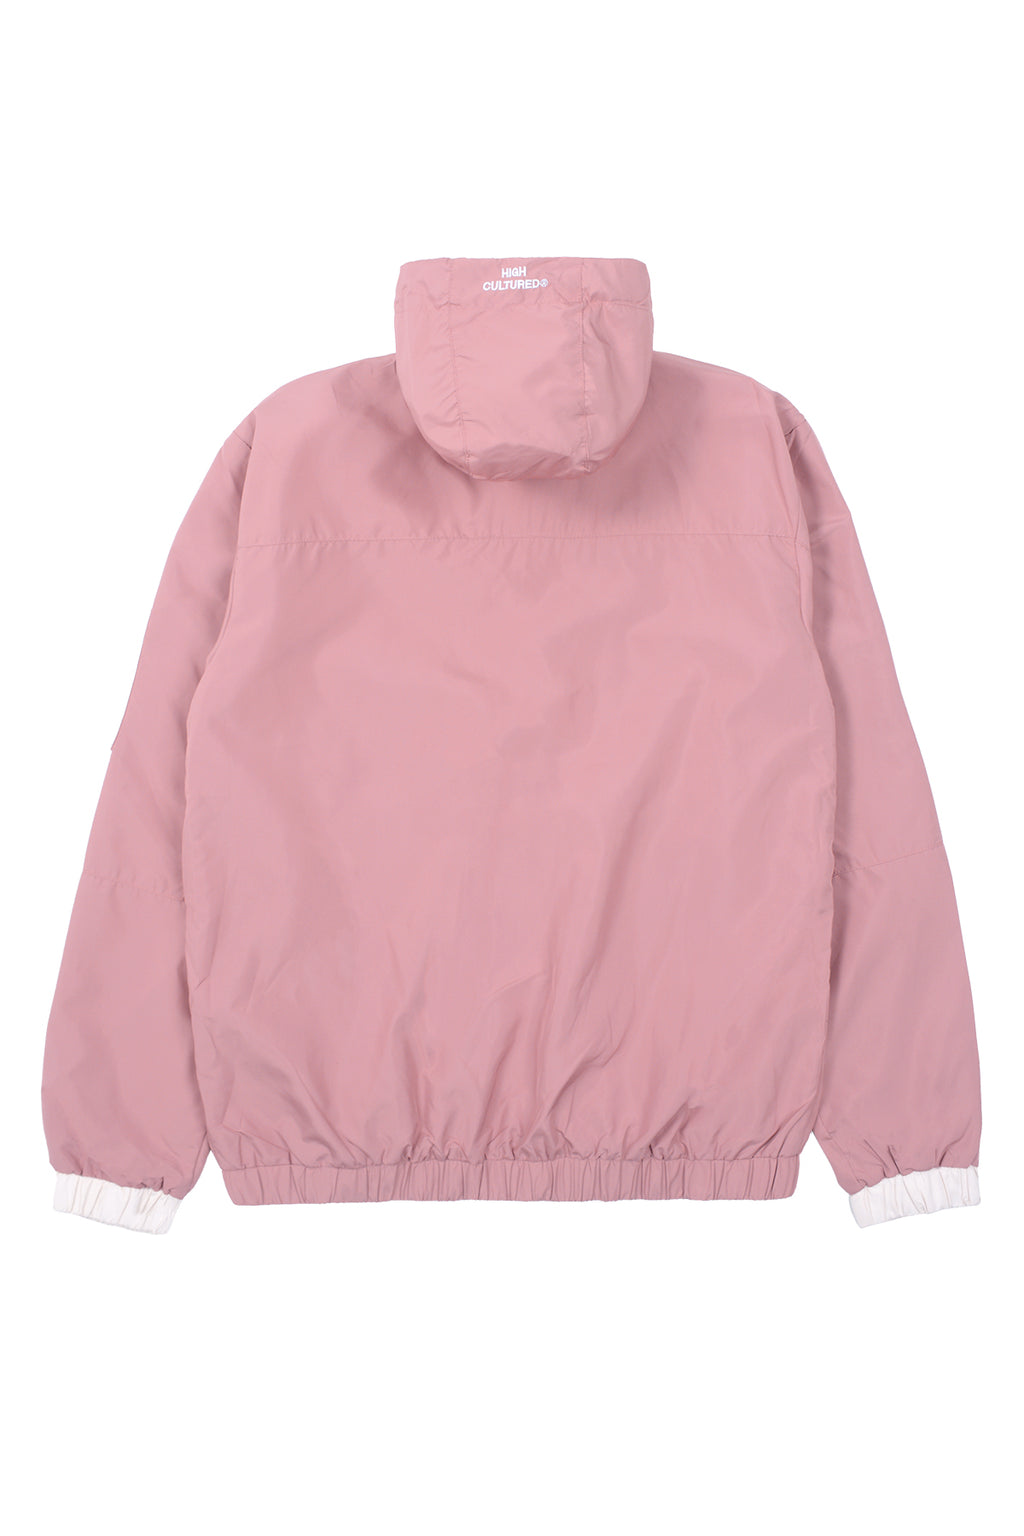 HIGH CULTURED CLASSIC ATHLETICS WINDBREAKER | PINK - 90